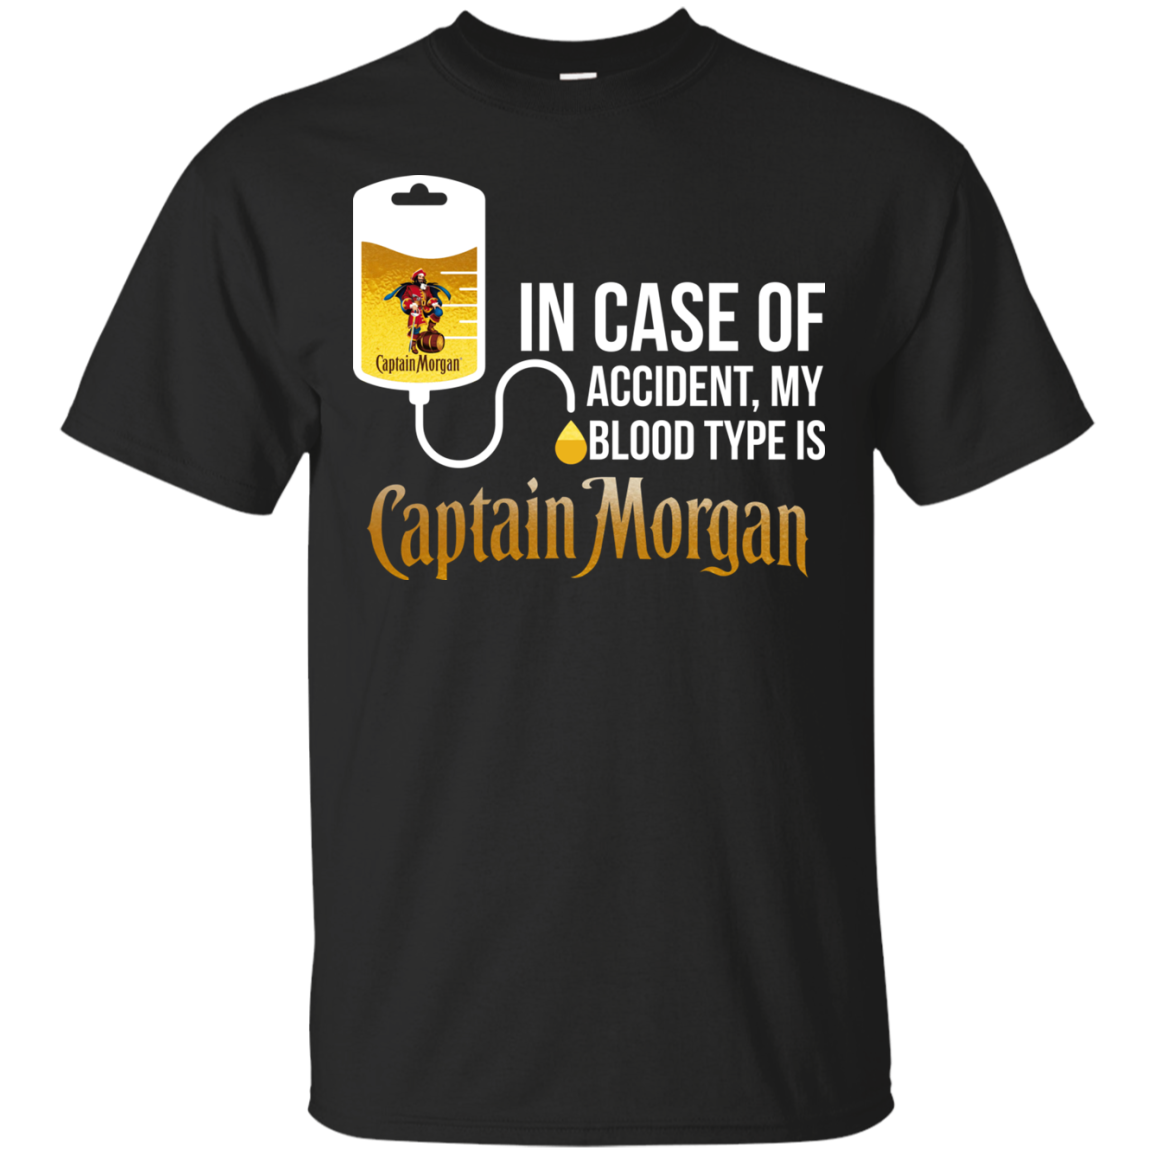 in case of accident my blood type is captain morgan t shirt long sleeve hoodie robinplacefabrics. Black Bedroom Furniture Sets. Home Design Ideas